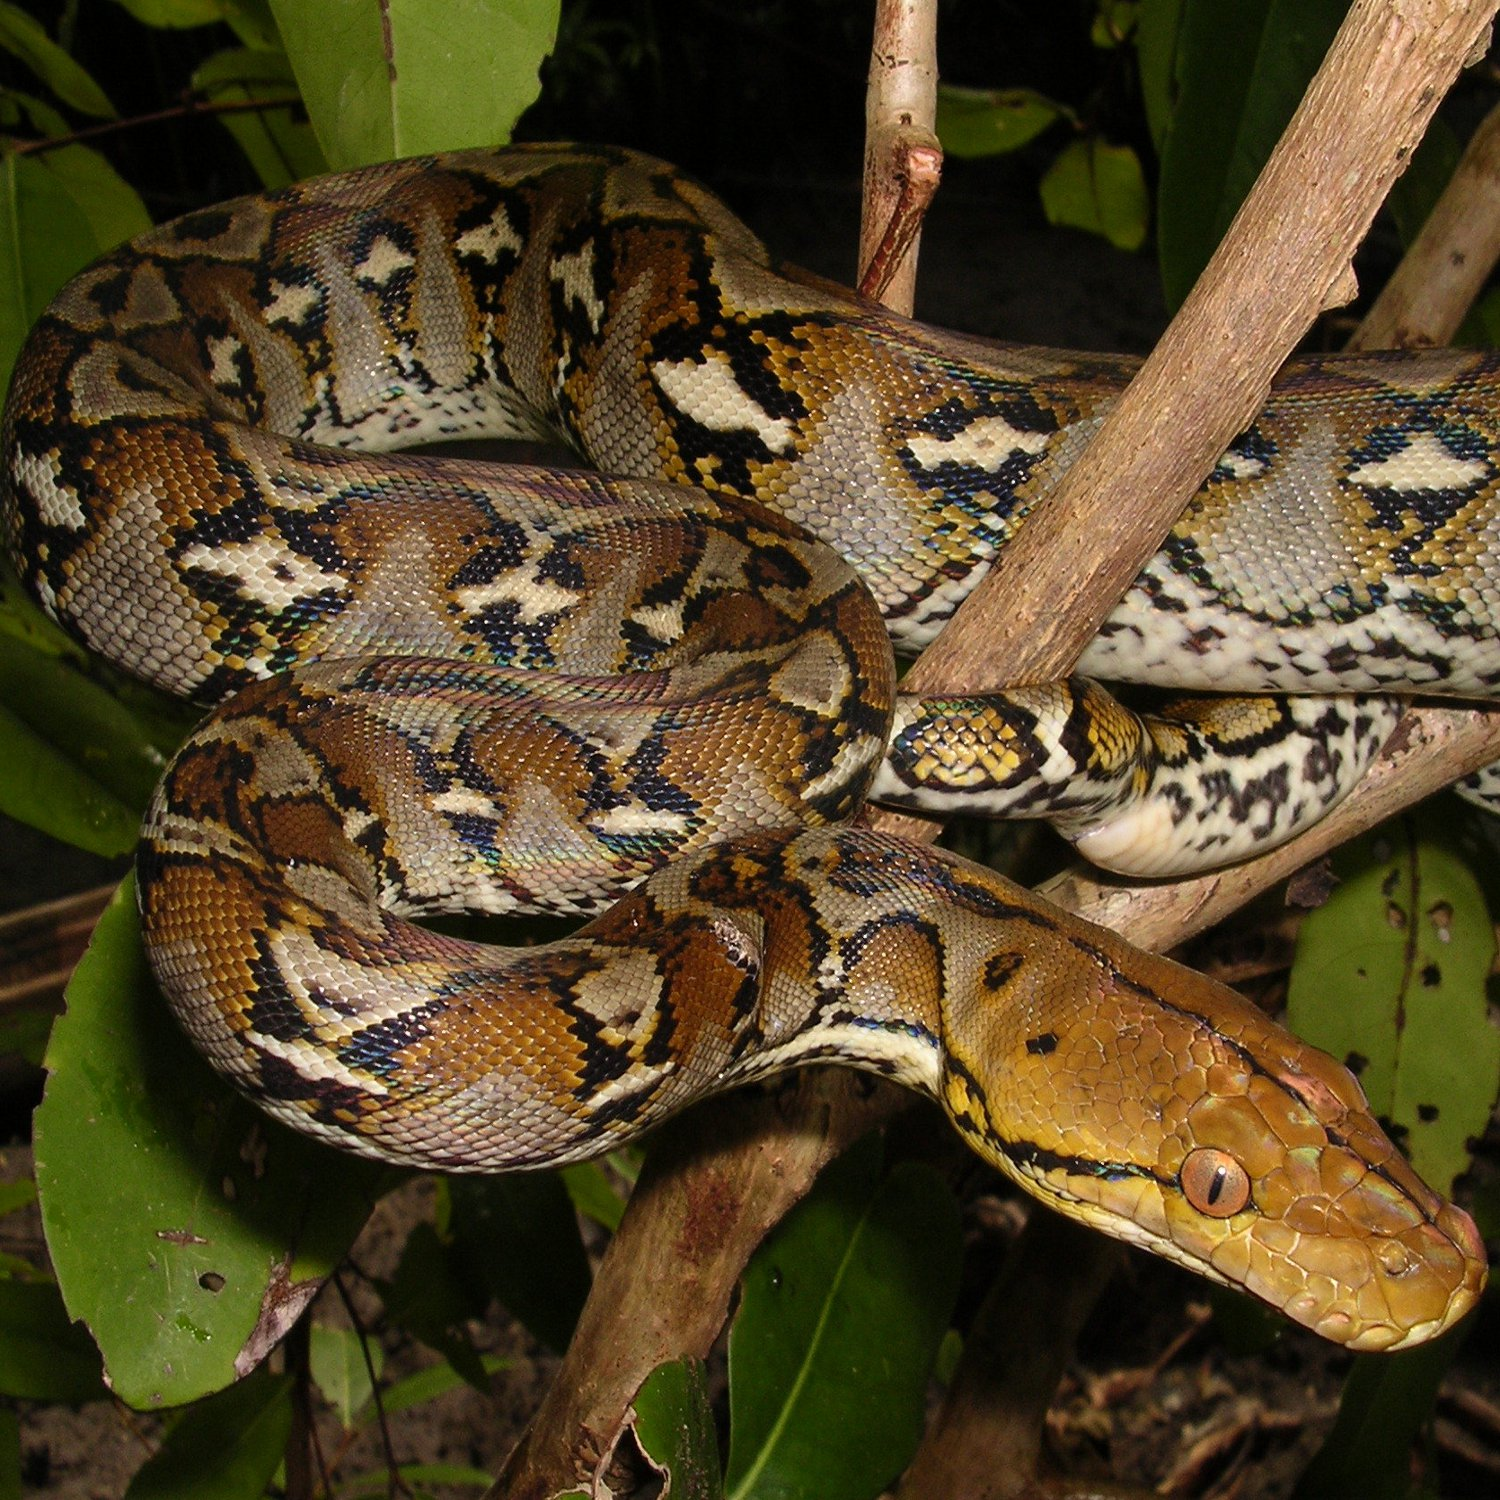 Reticulated Python (Broghammerus reticulatus). Photo: Bjorn Lardner